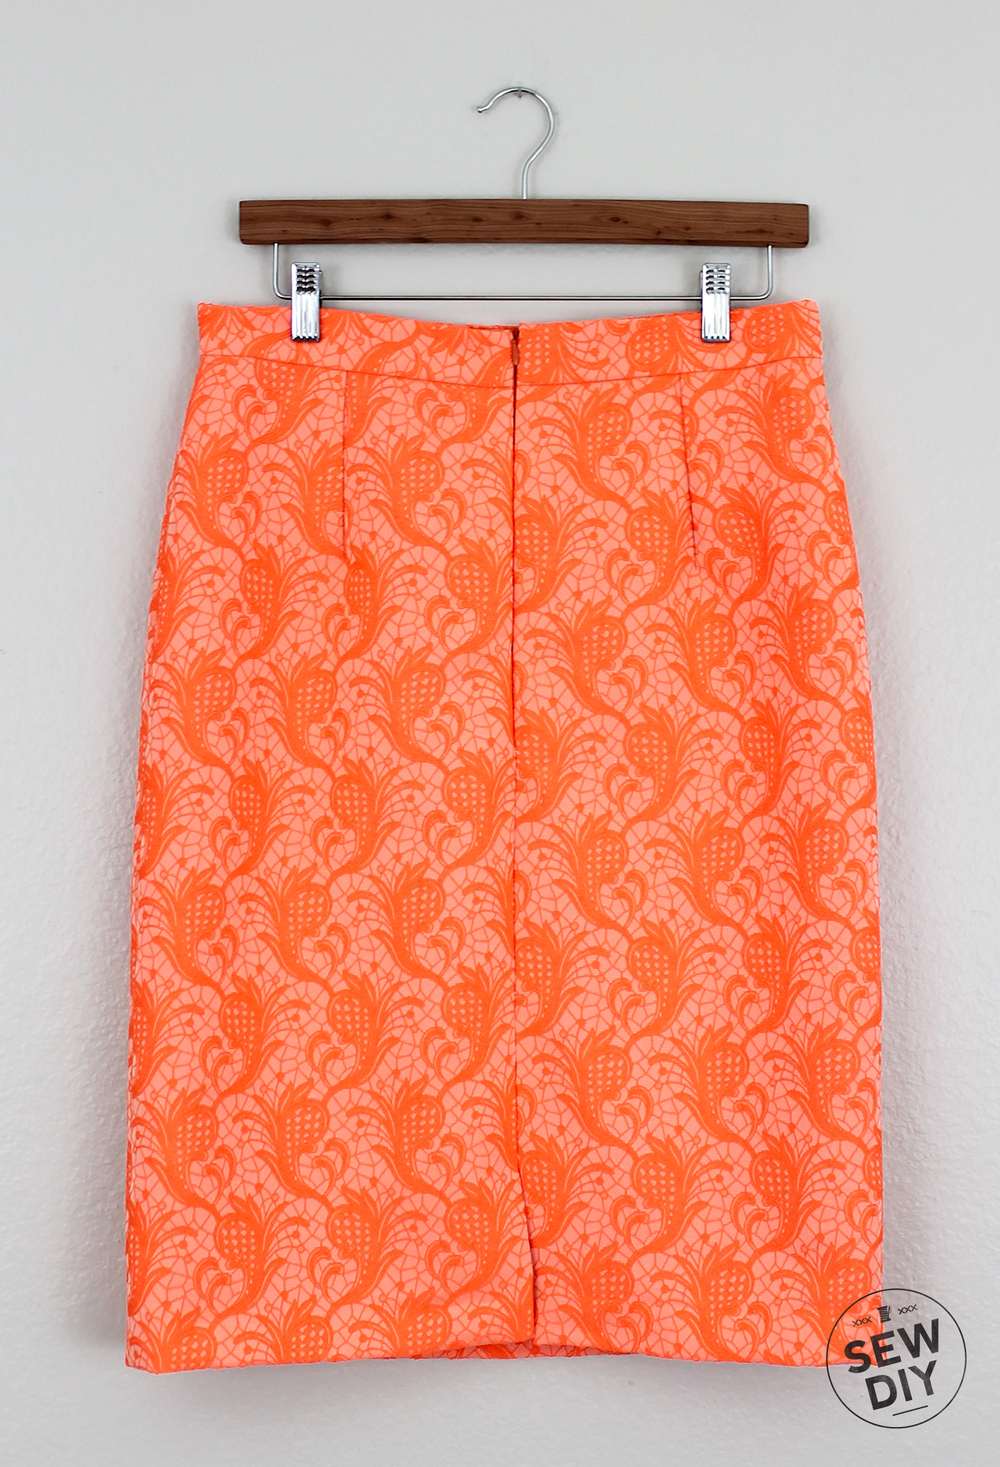 Sew DIY Orange Brocade Skirt Back